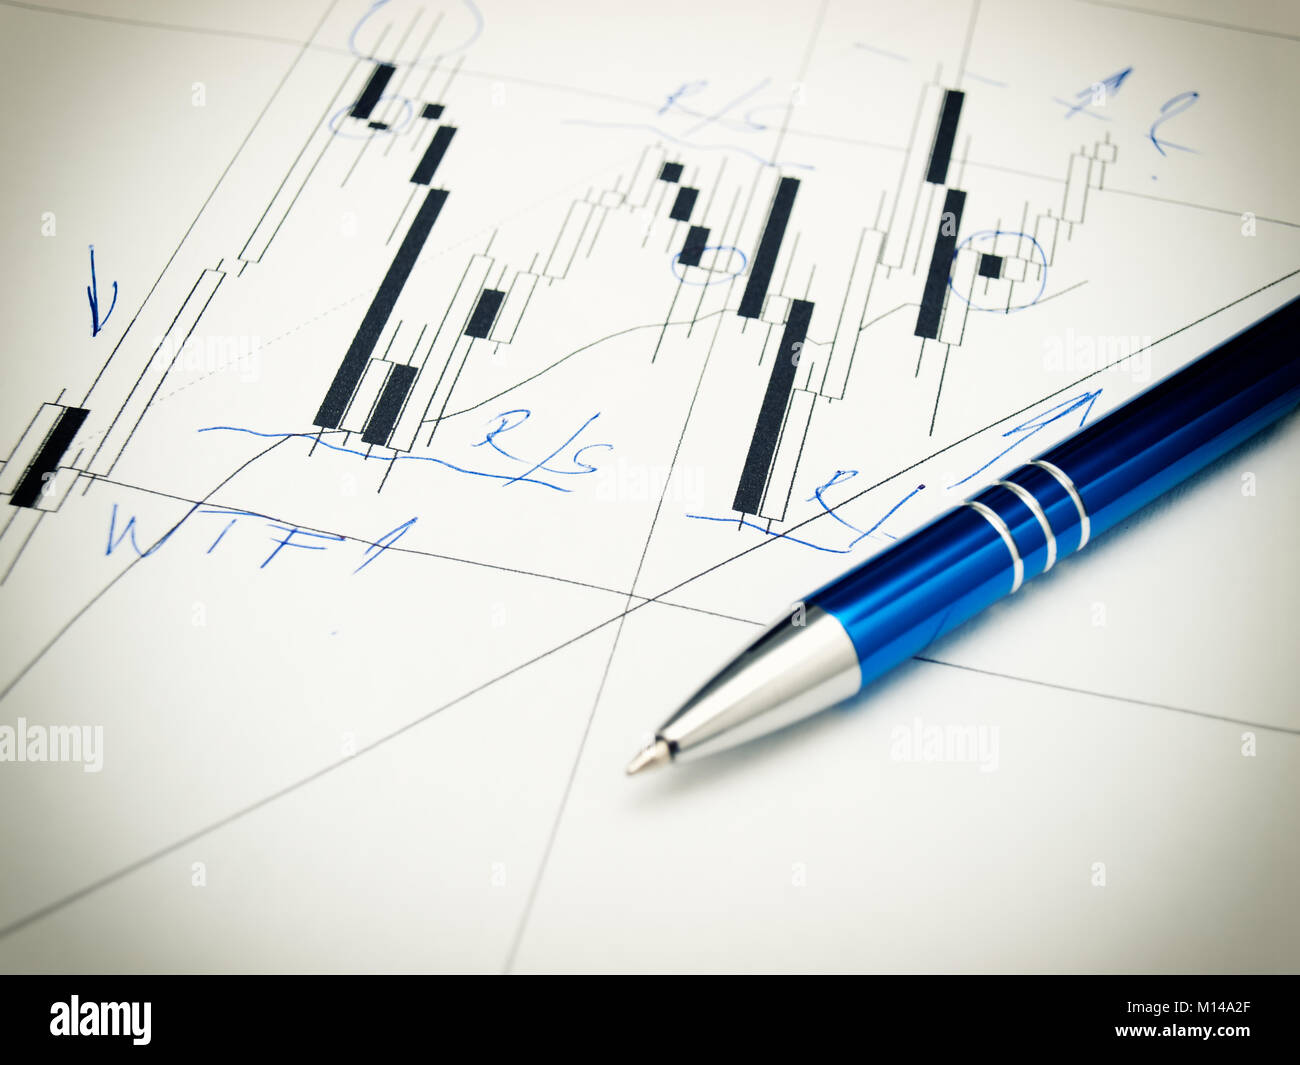 Candlestick forex graph and pencil. - Stock Image